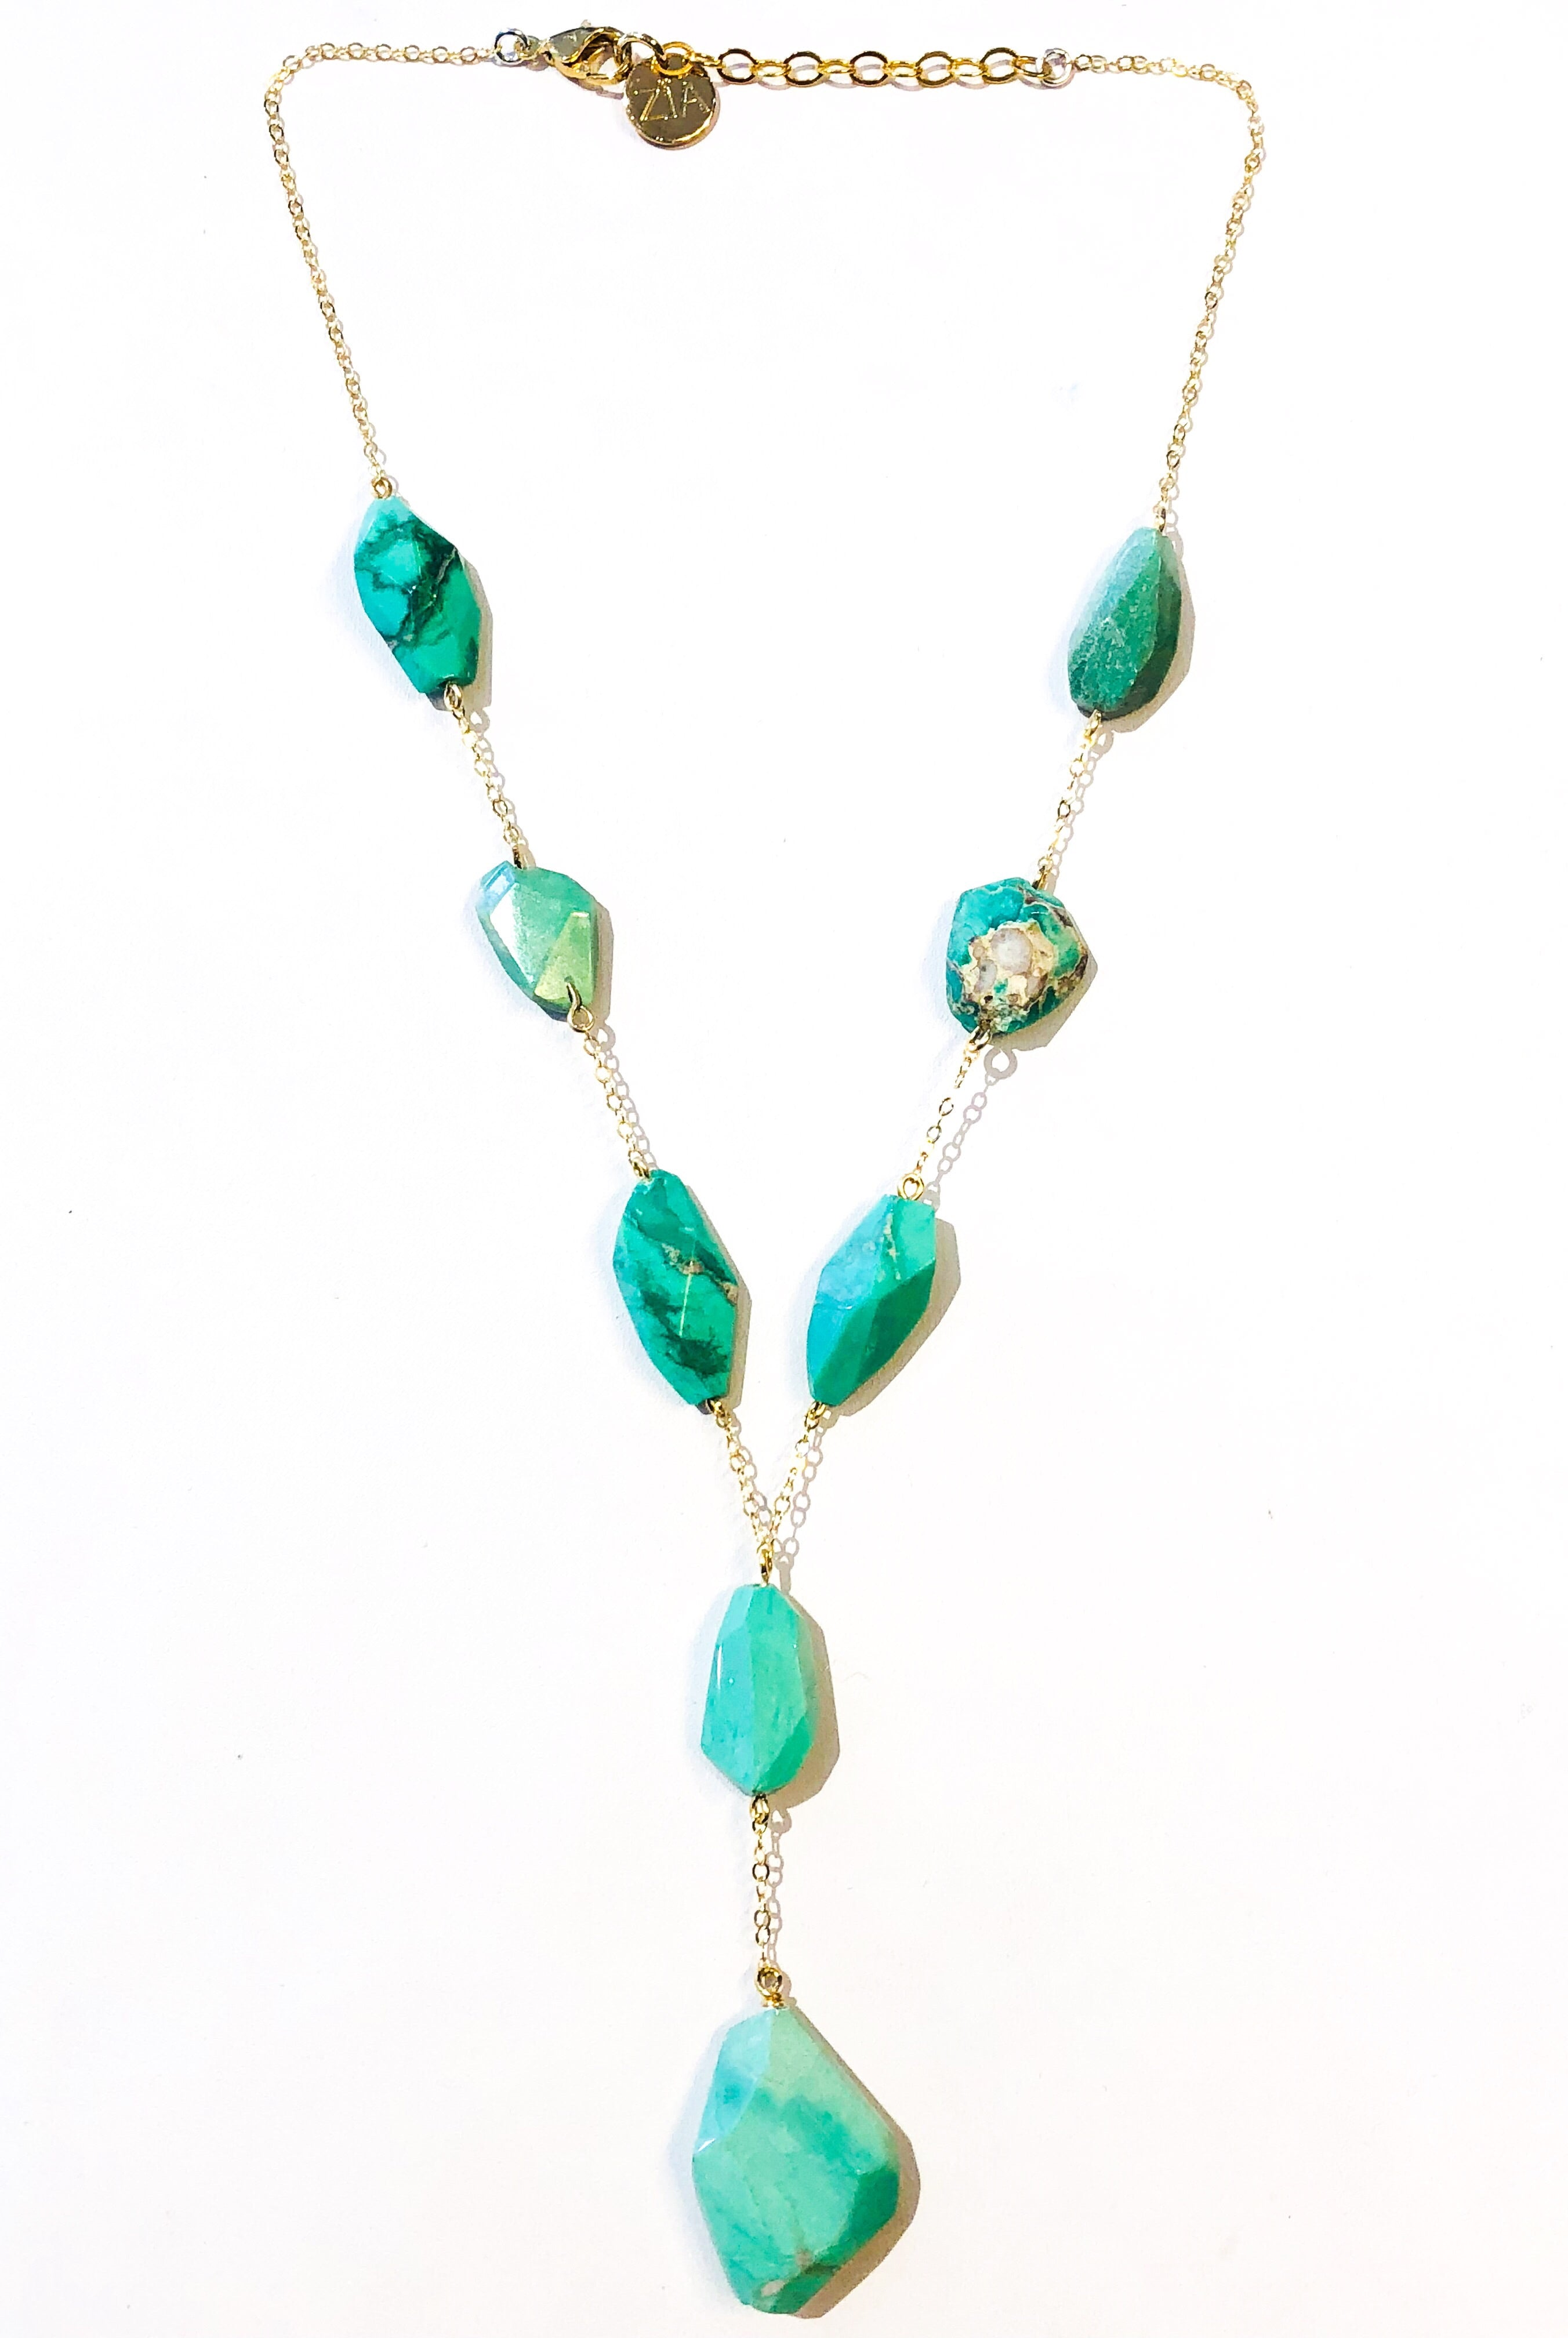 Varicite Necklace